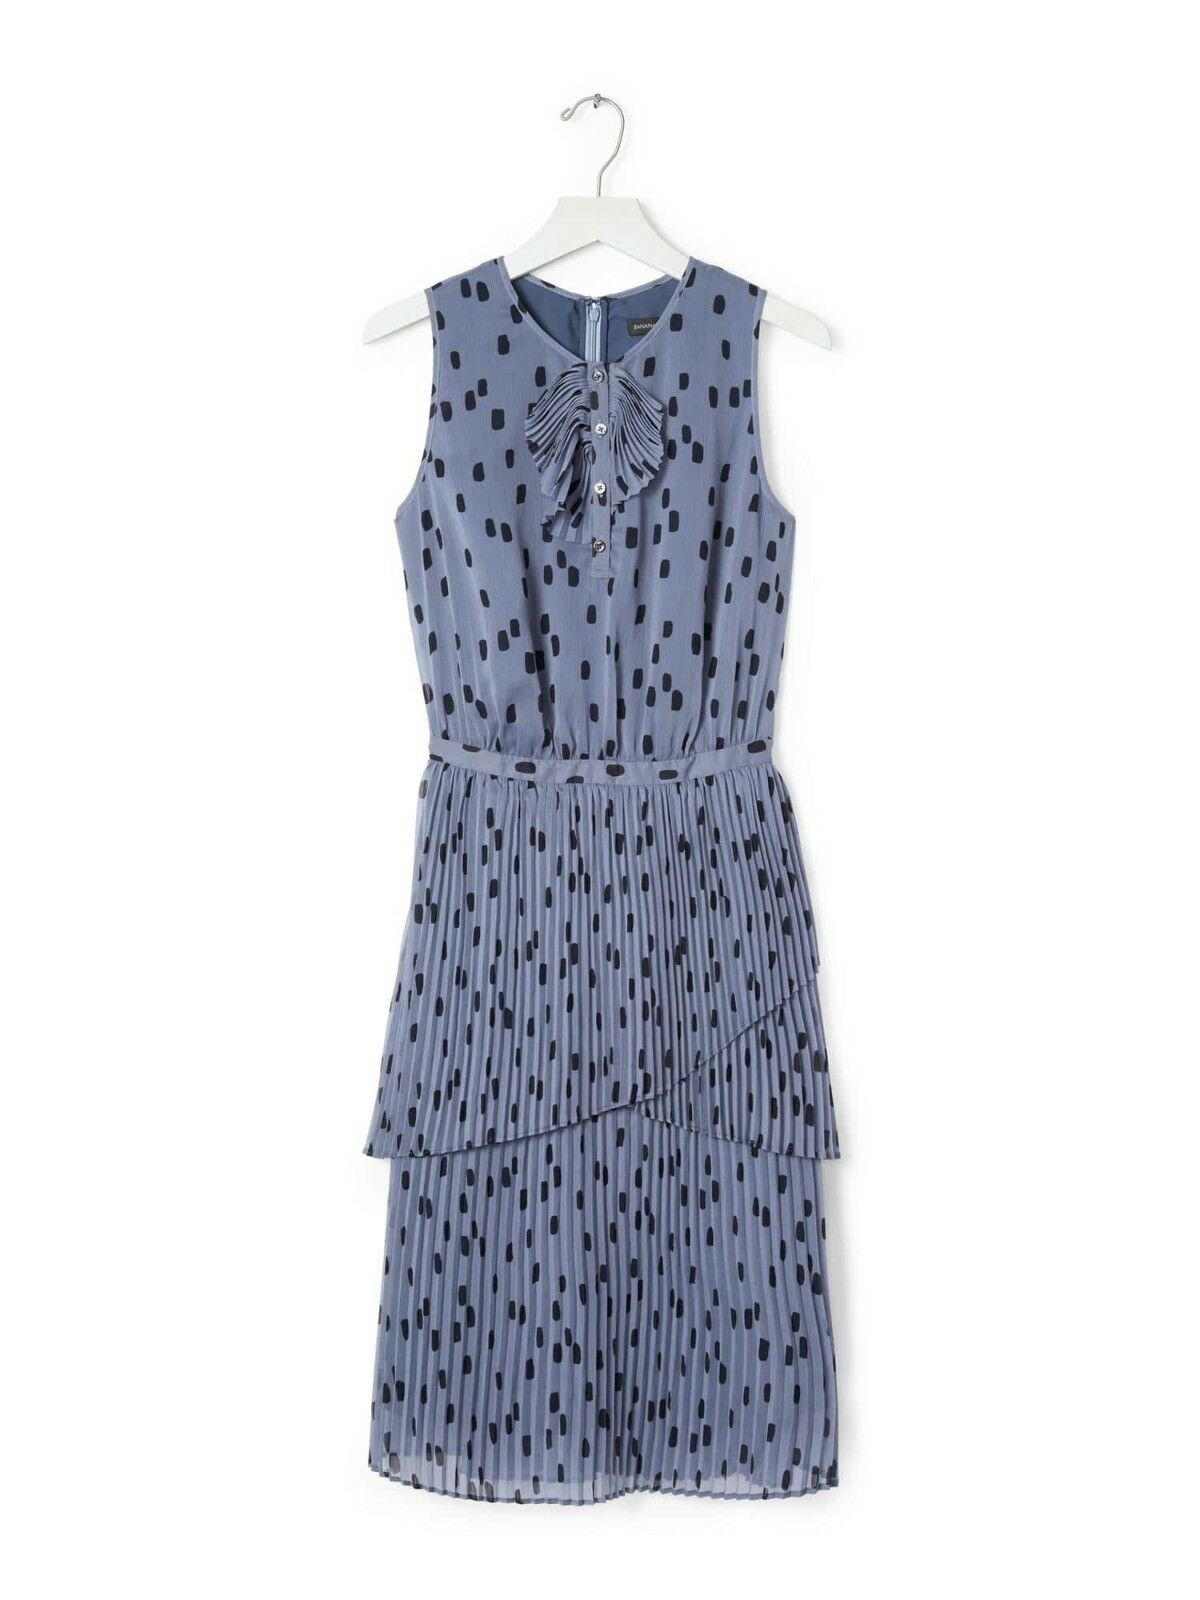 NWT Banana Republic pleated dot print polka dot Blau ruffle tierot dress 0